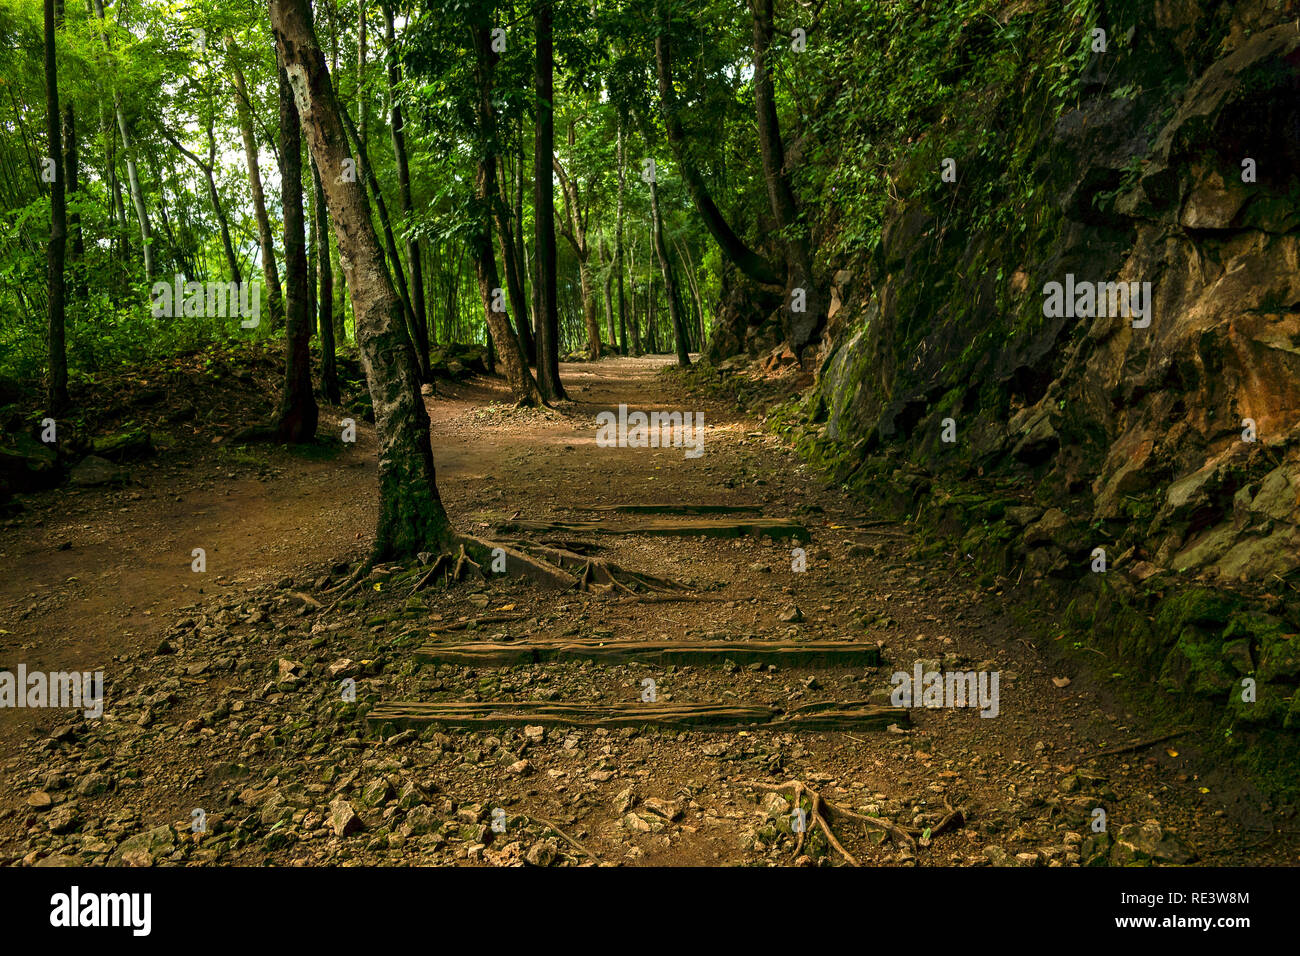 The infamous Hellfire Pass cutting section of the Death Railway, as known as Thai–Burma Railway. Constructed by prisoners of war during World War 2. - Stock Image